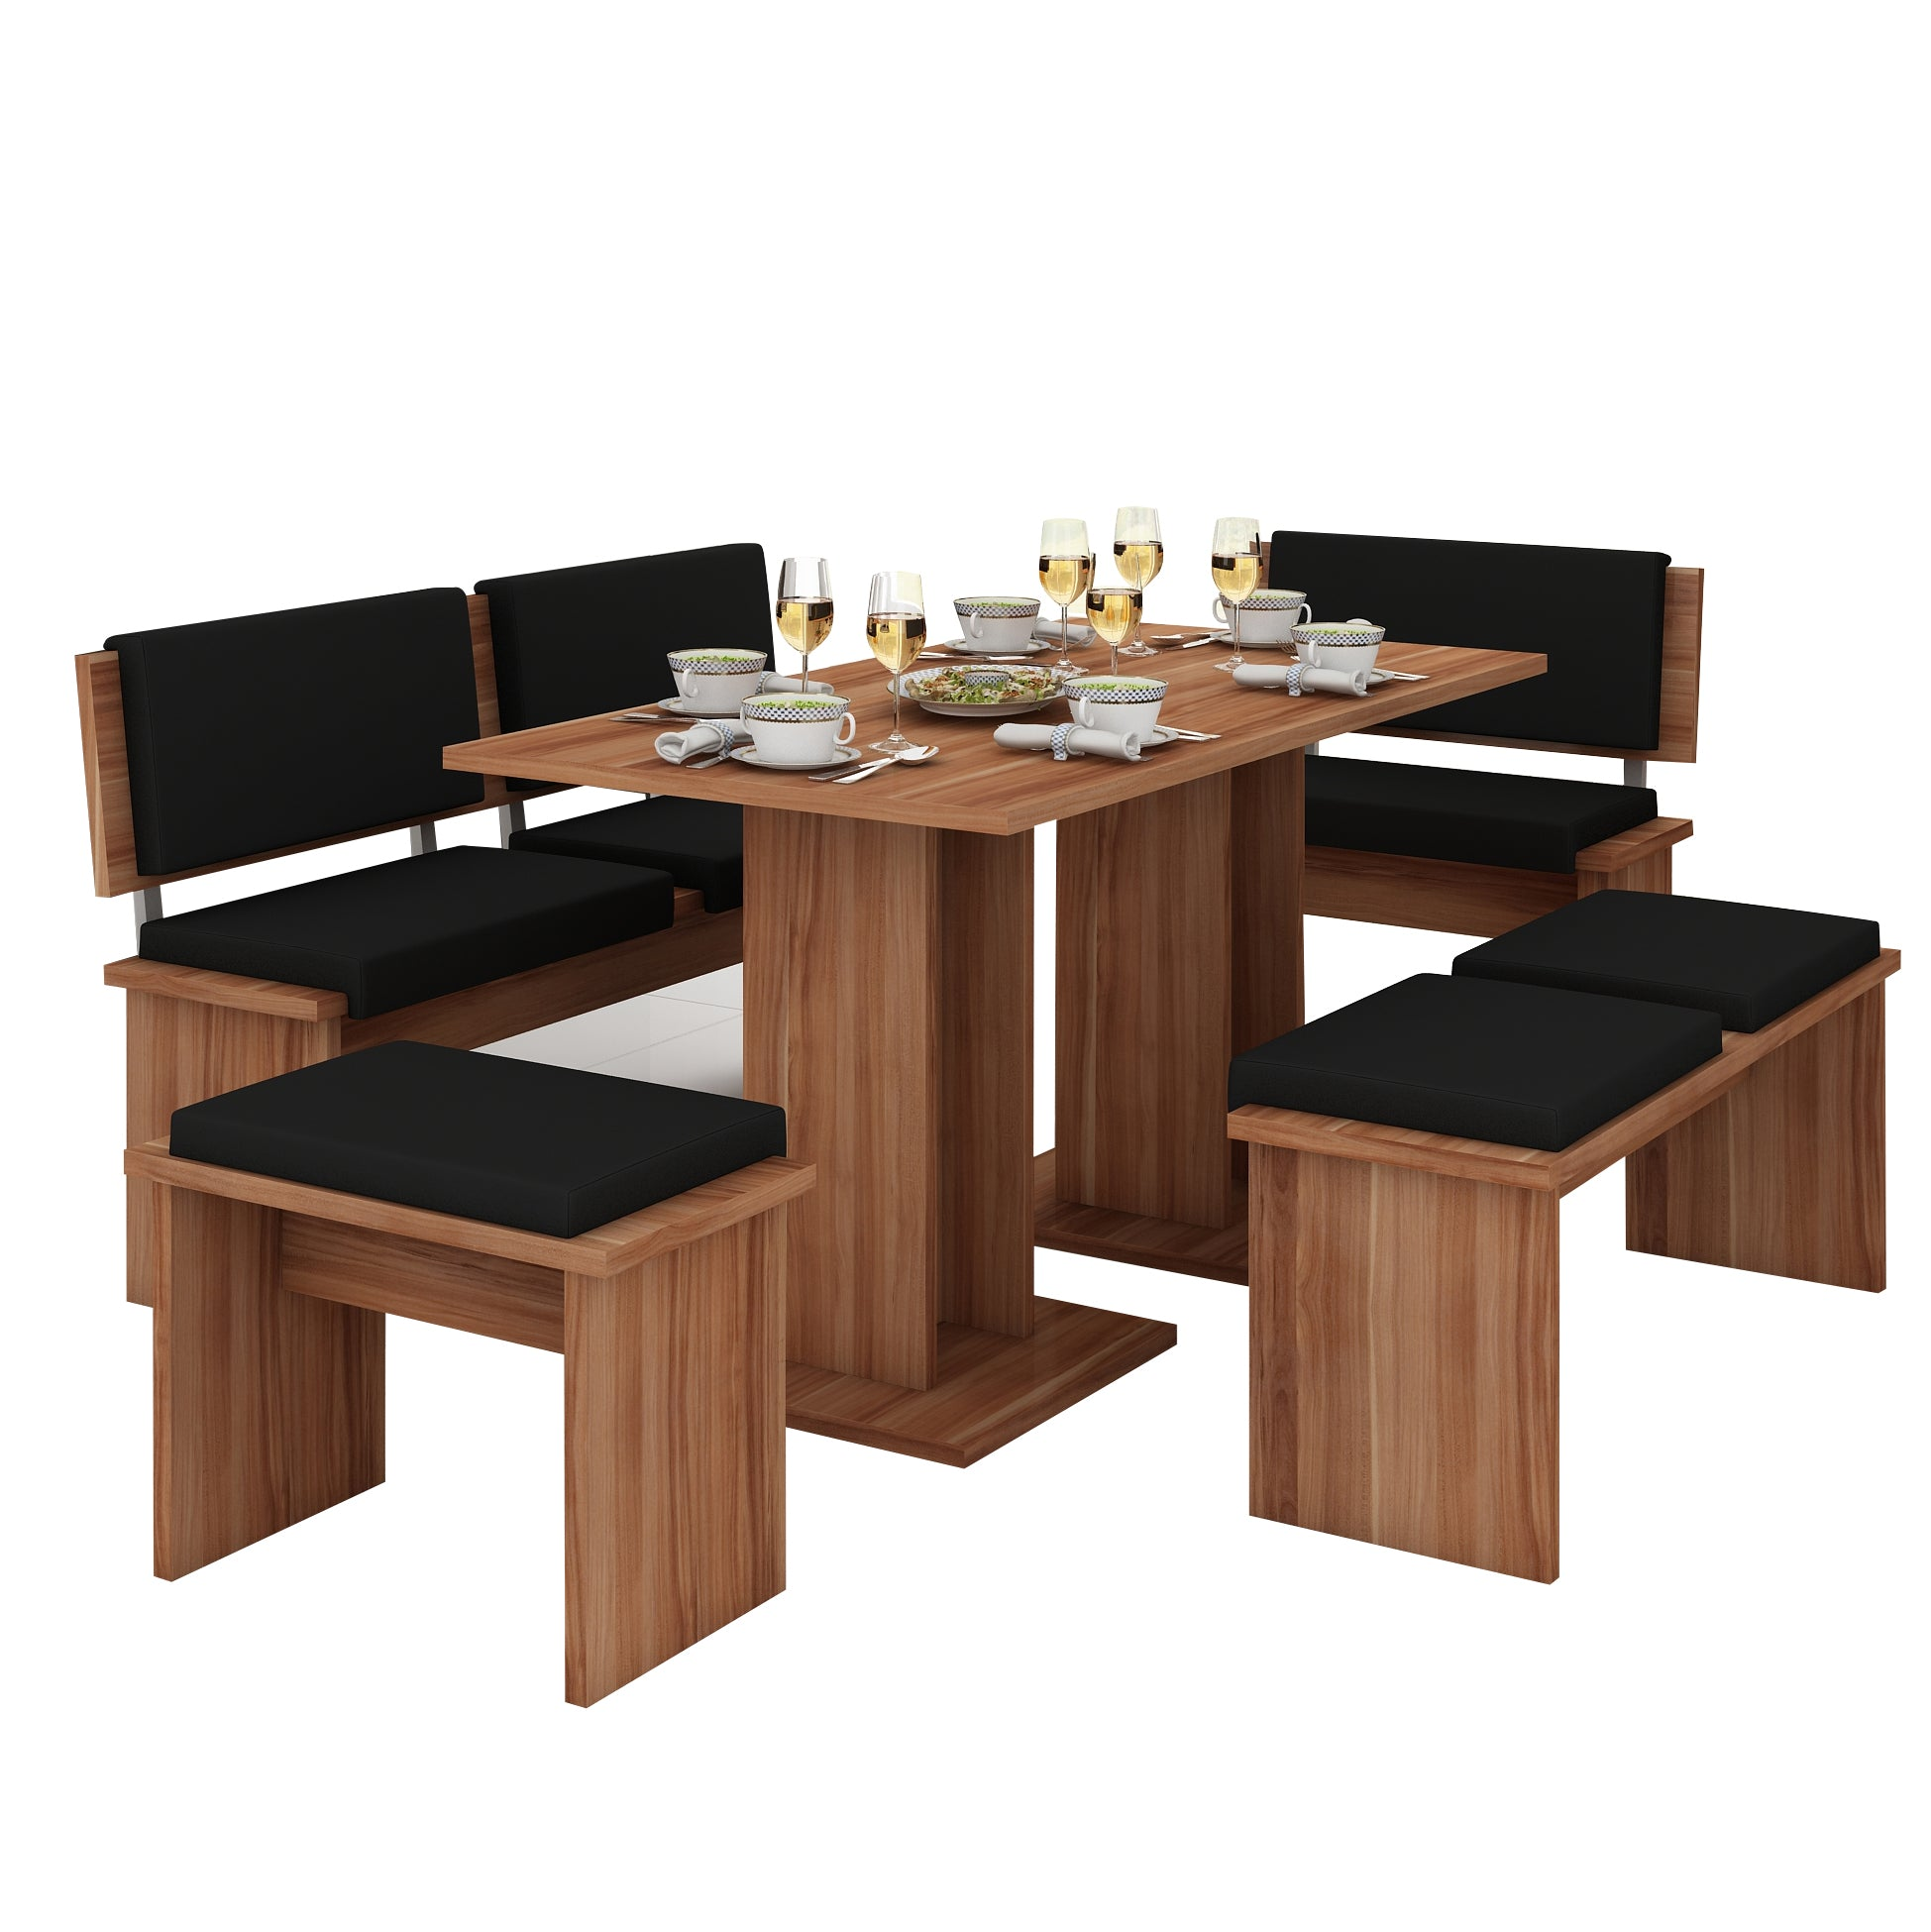 Bond 5-piece Dining Room Set